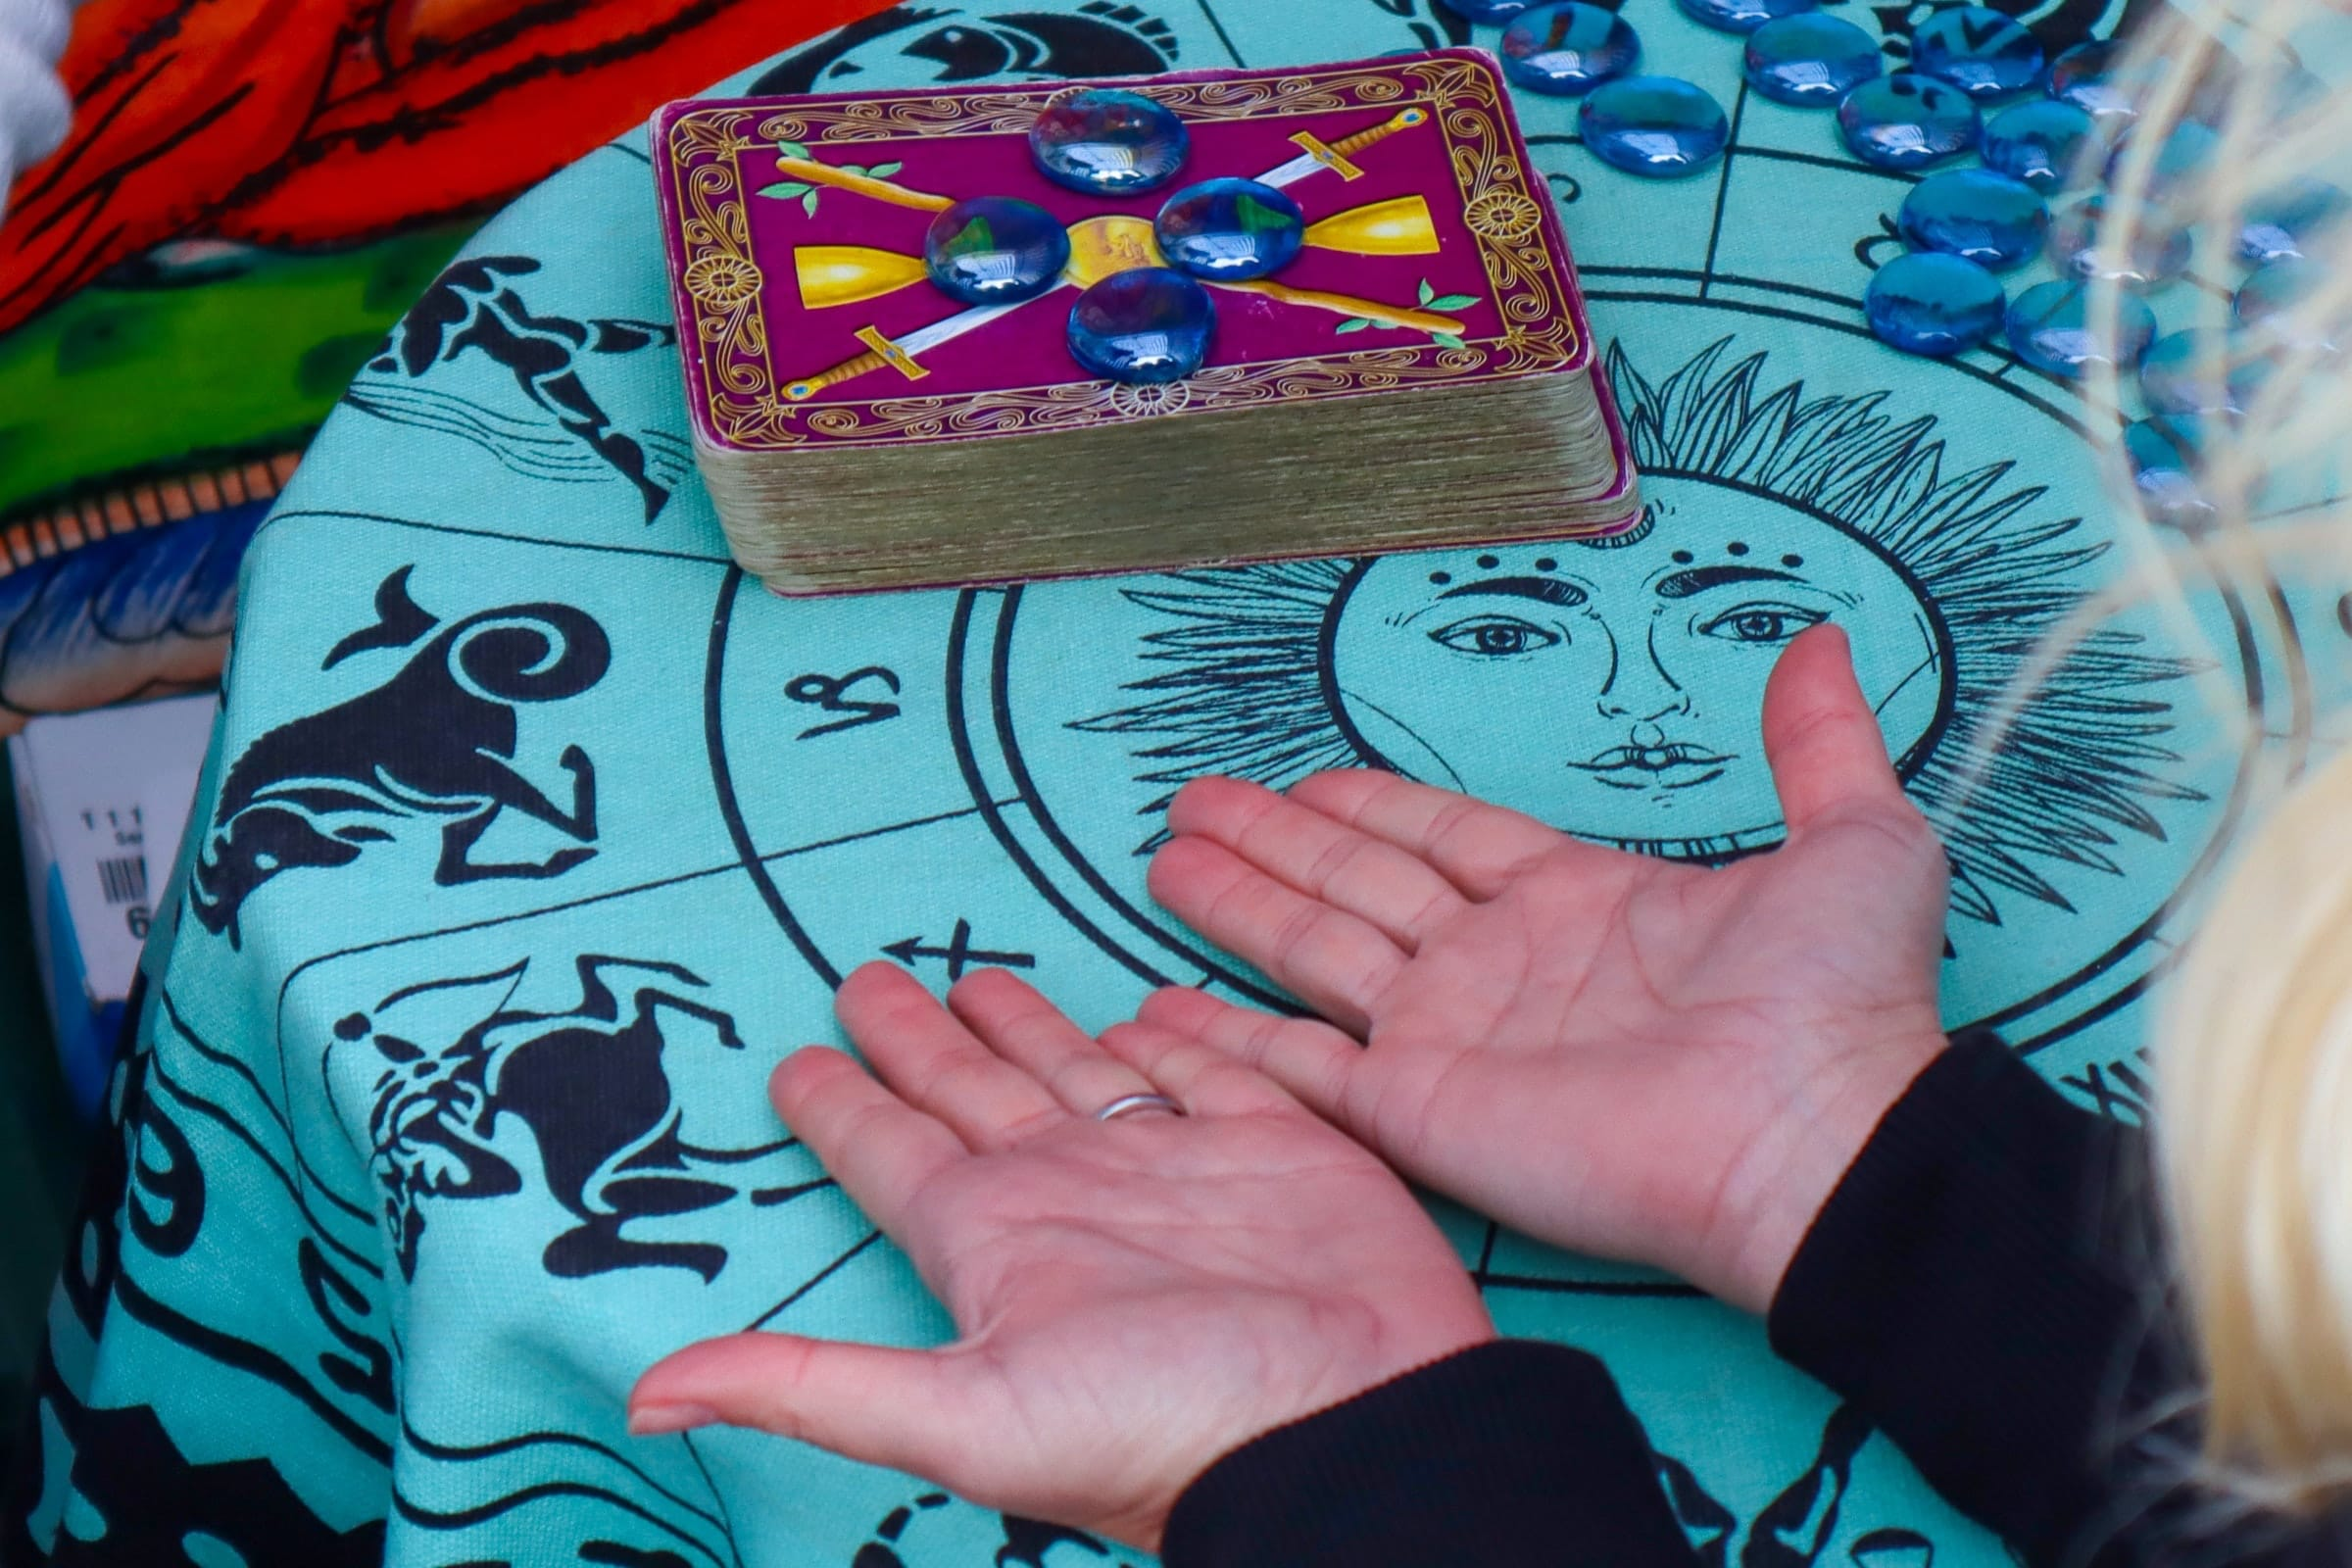 woman's hands with palms face up on a table in front of a deck of tarot cards